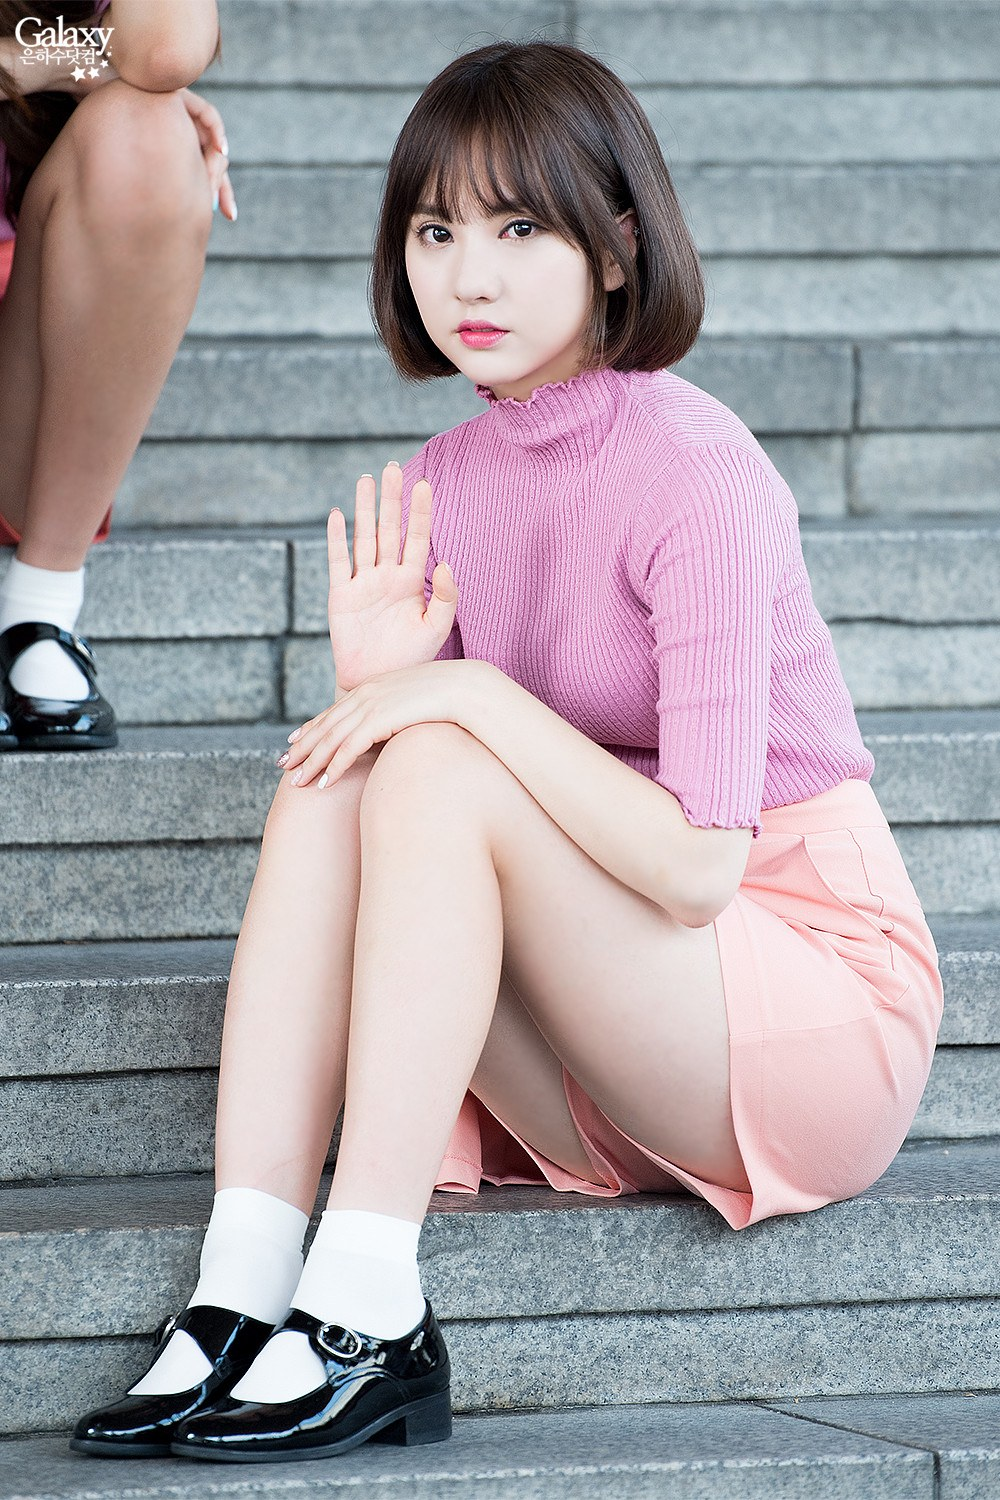 Top 10 Sexiest Outfits Of Gfriend S Eunha Koreaboo